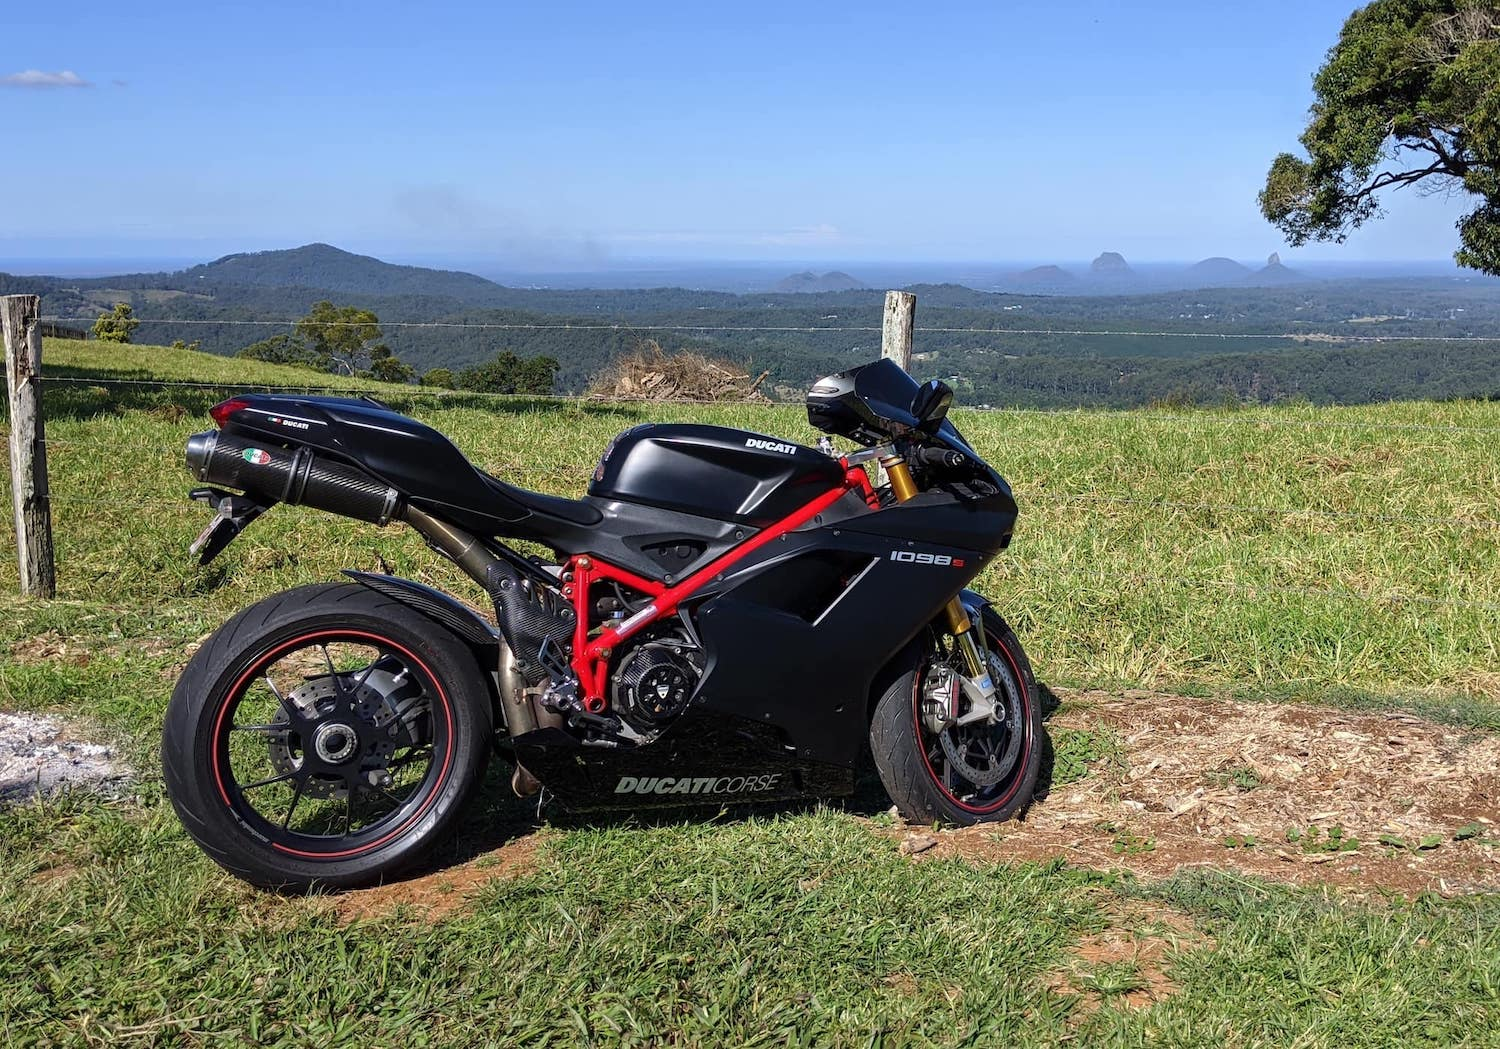 Side view of Ducati 1098S riding into mountains in Australia